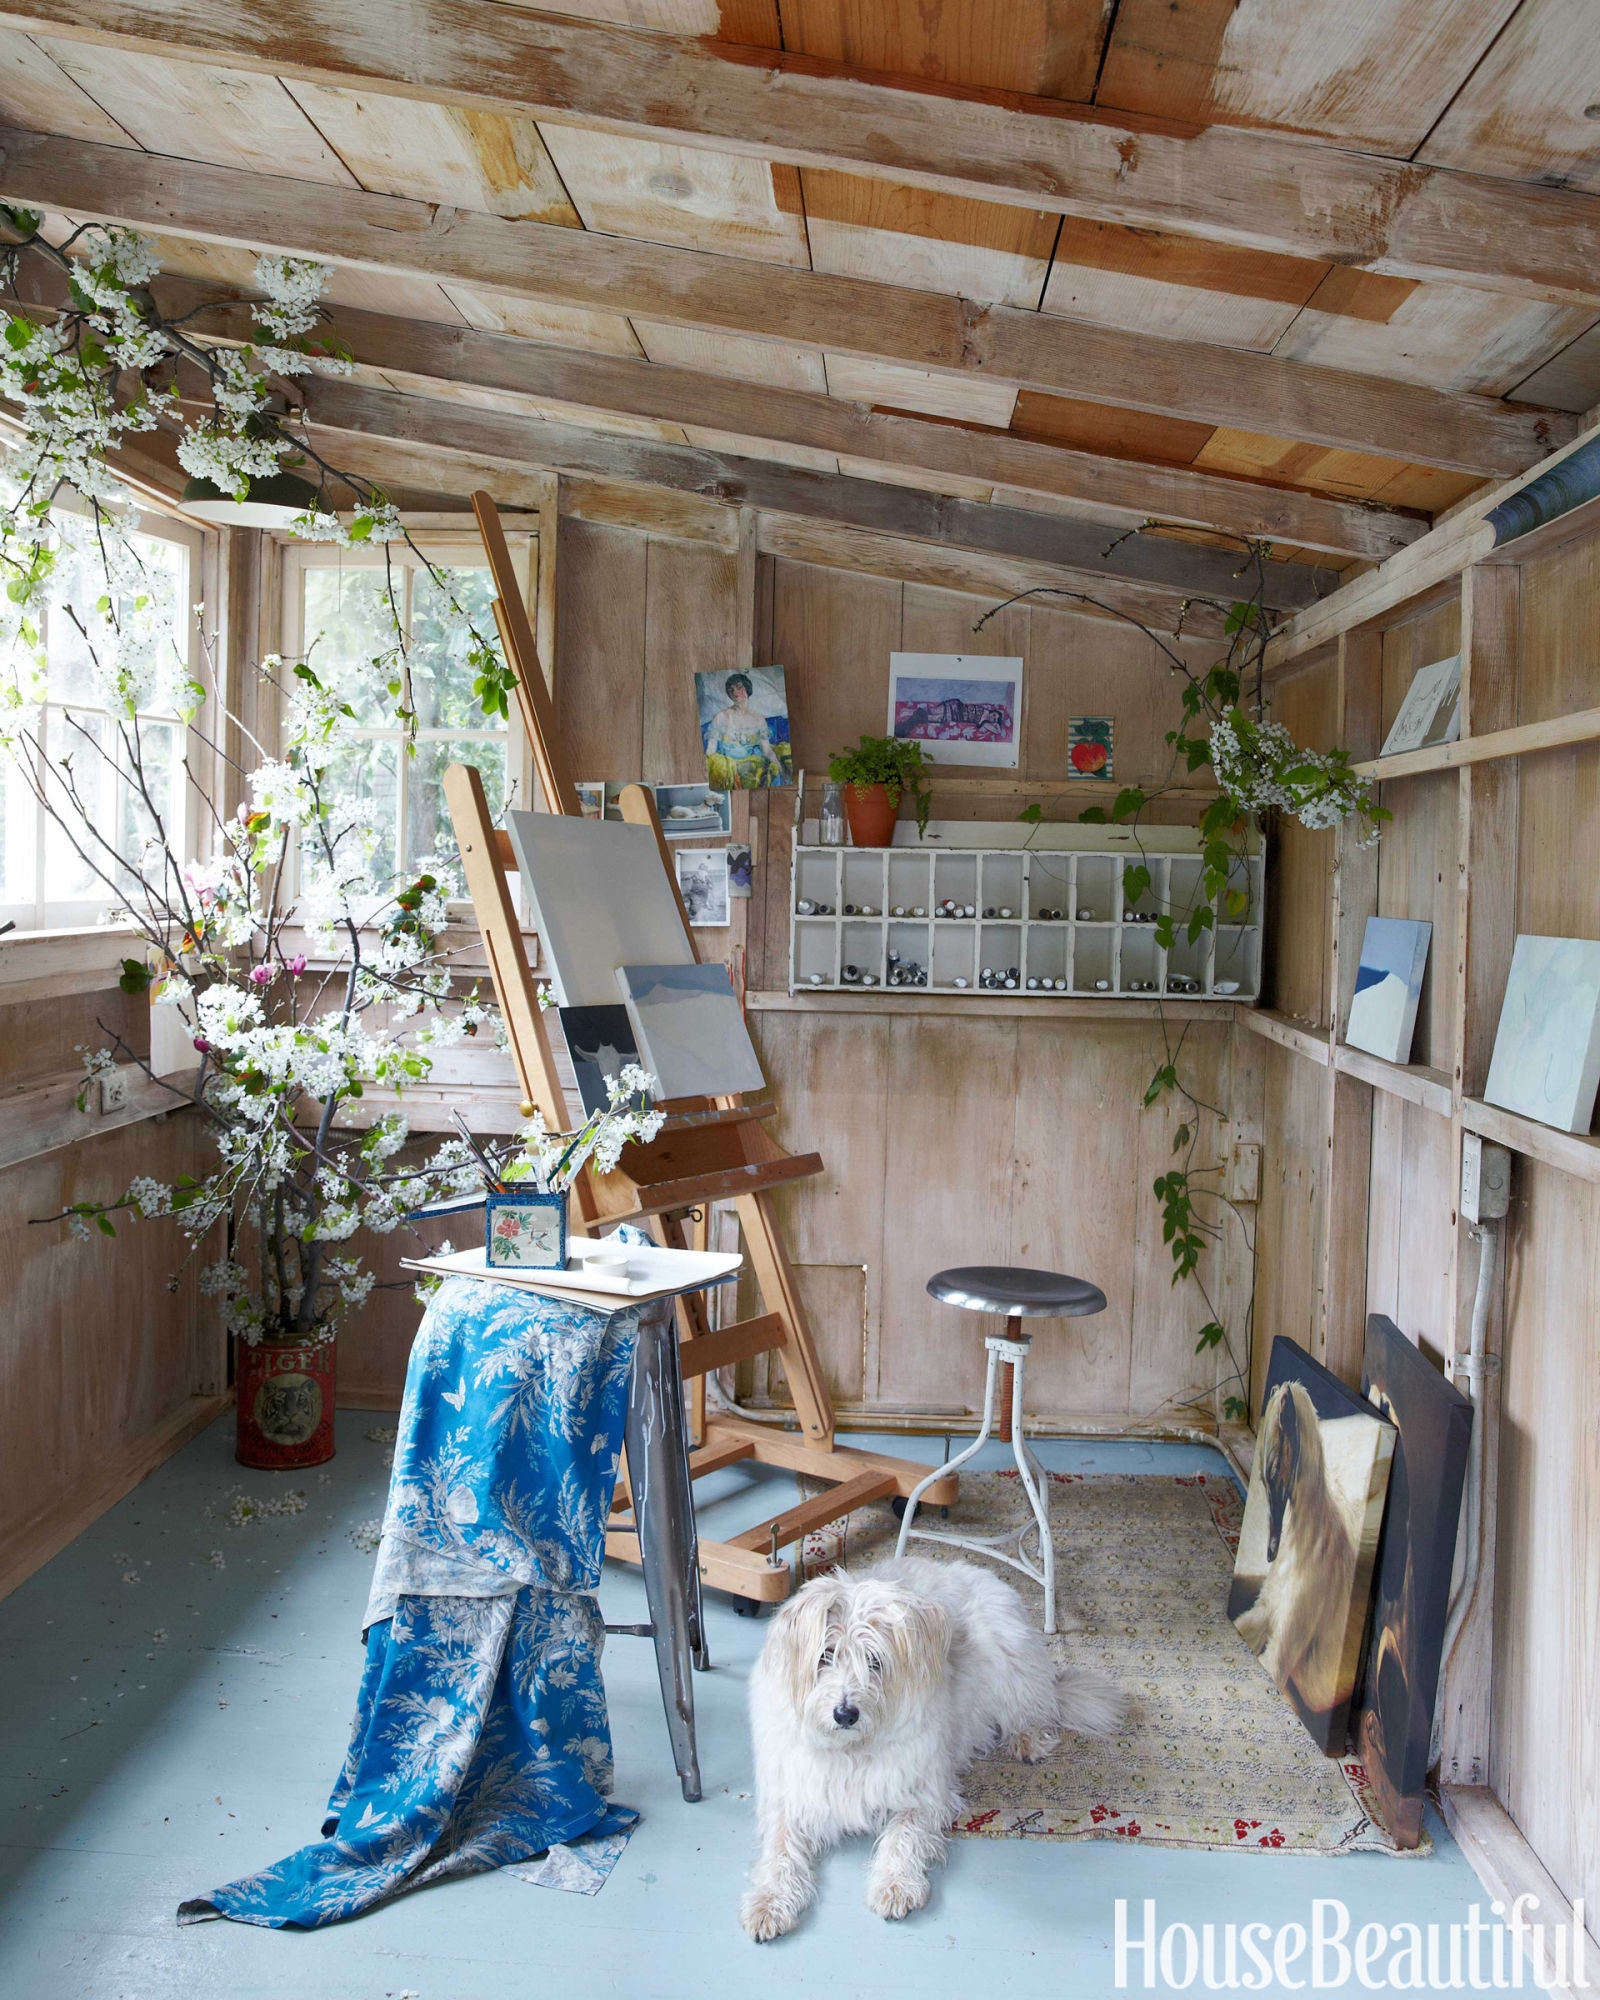 Garden shed art studio with neutral color palette